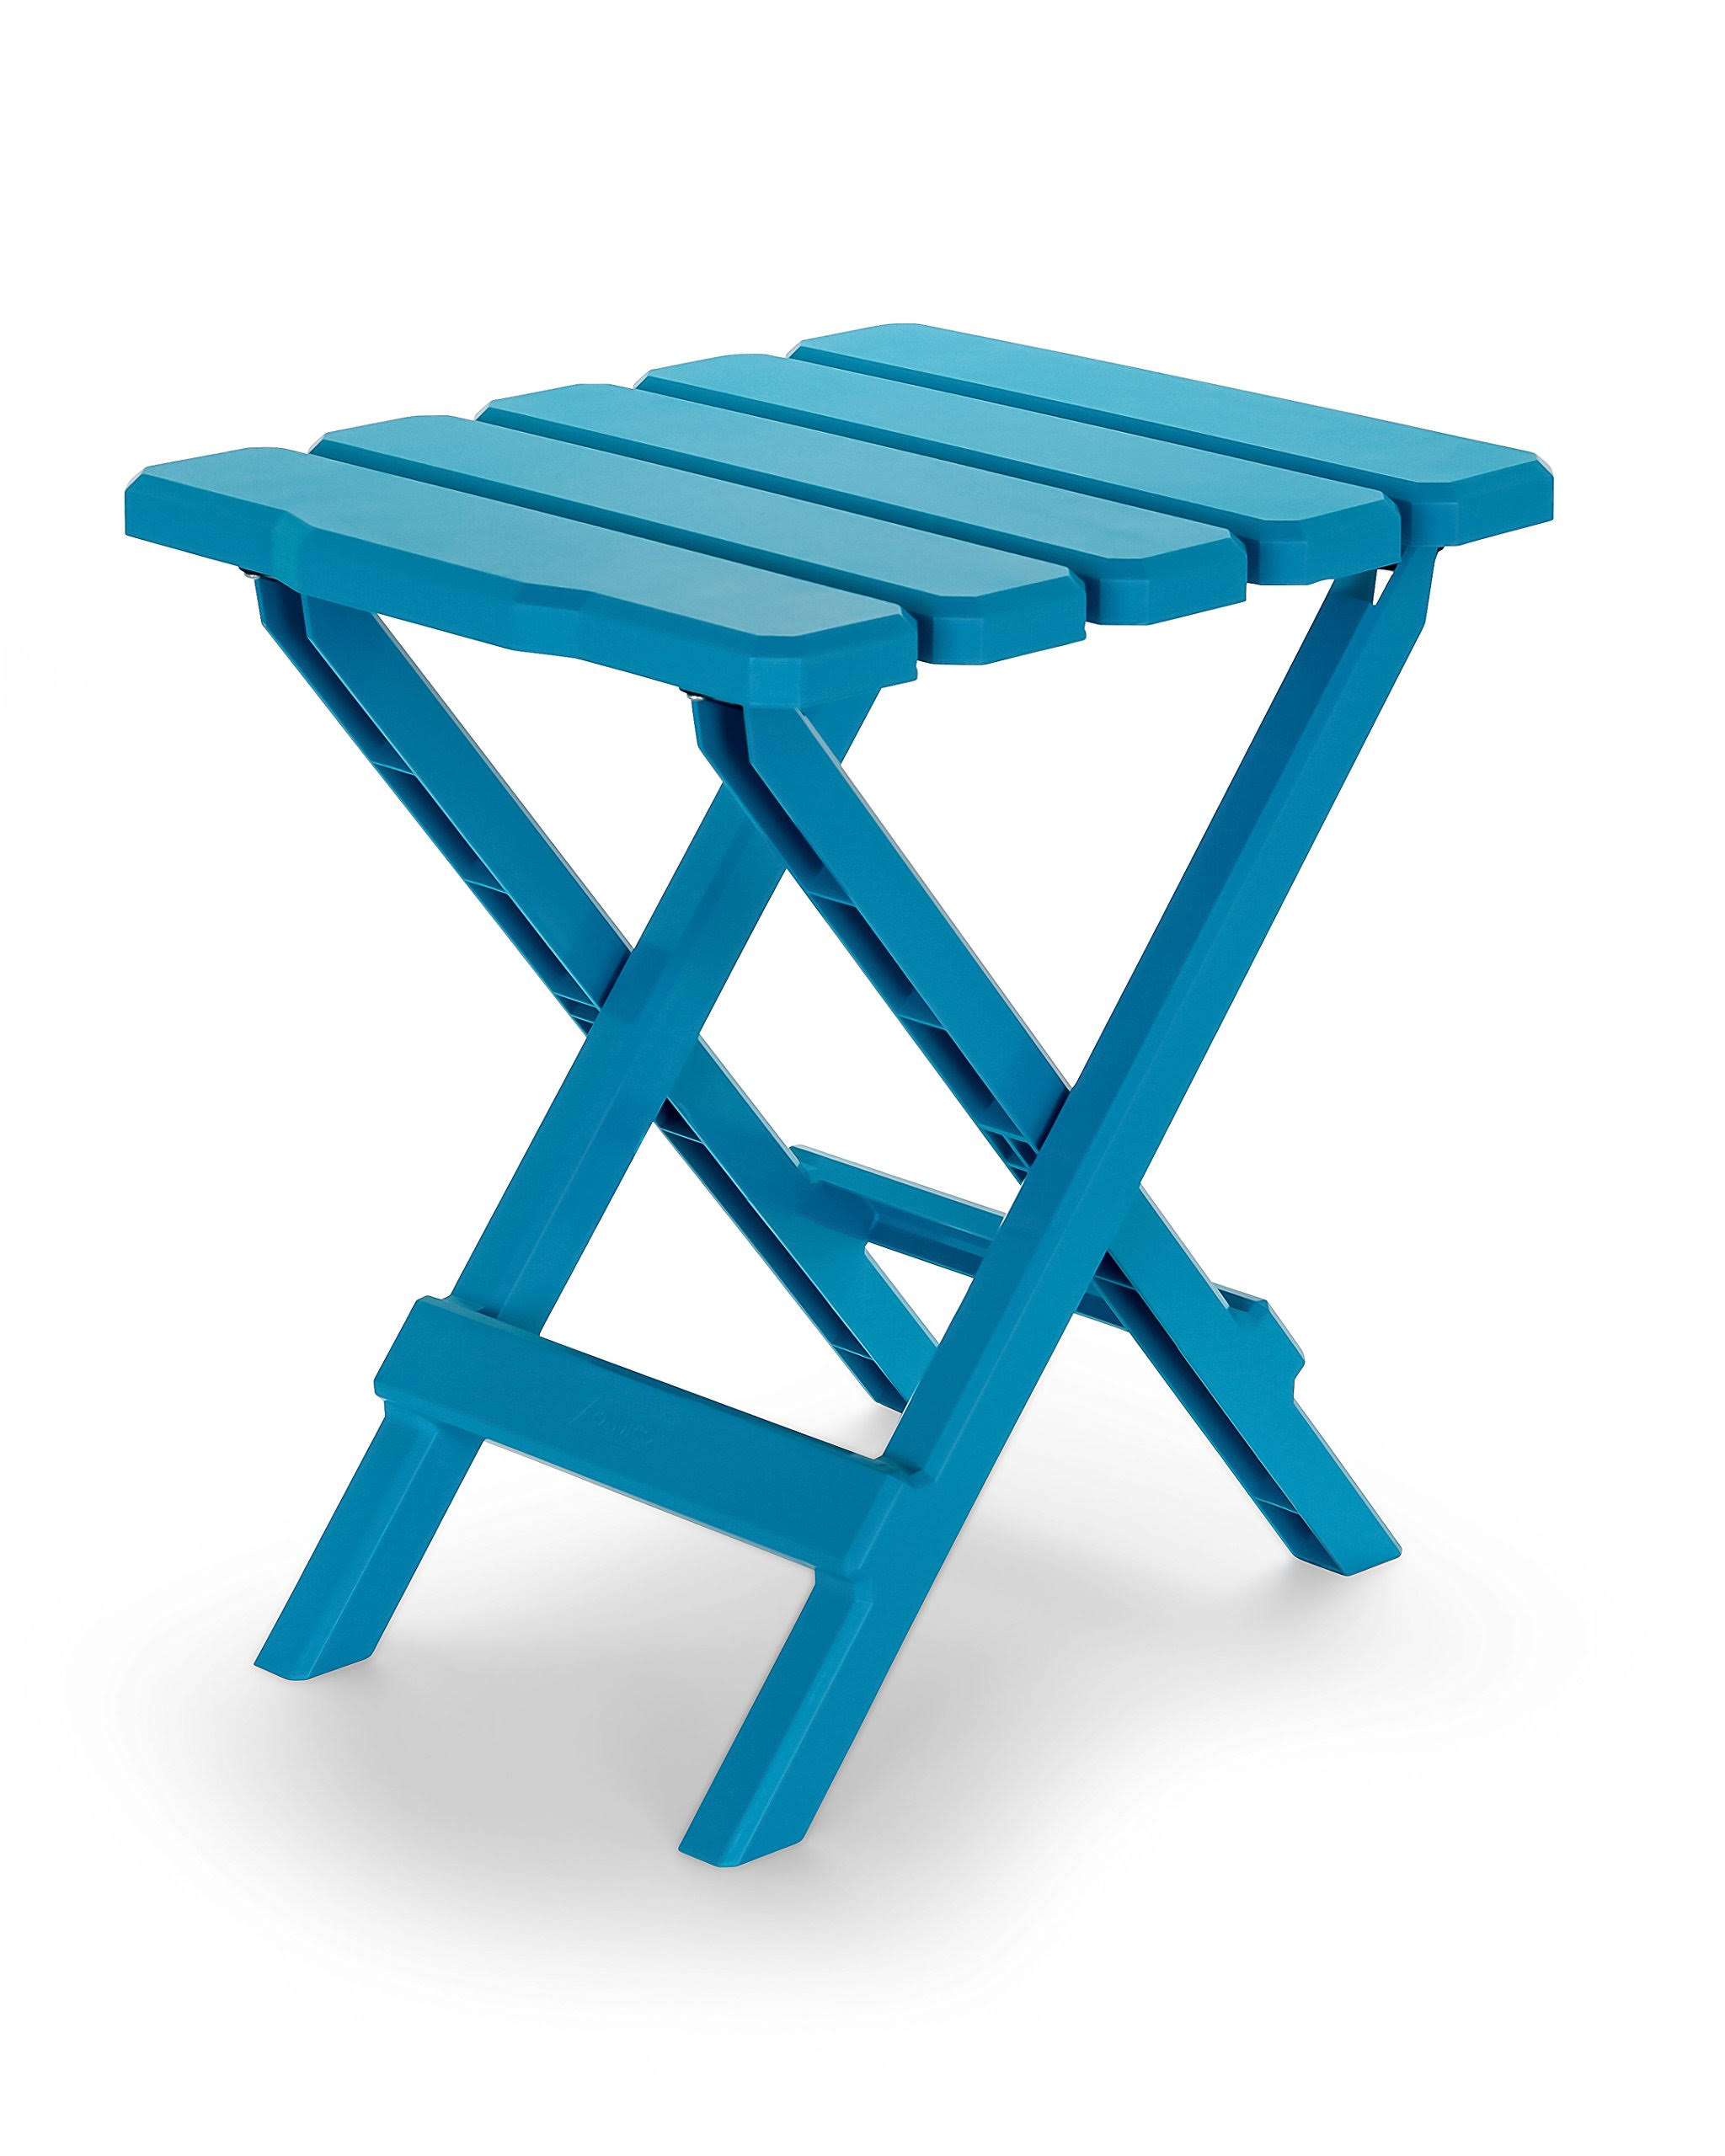 Camco 51680 Adirondack Aqua Folding Table